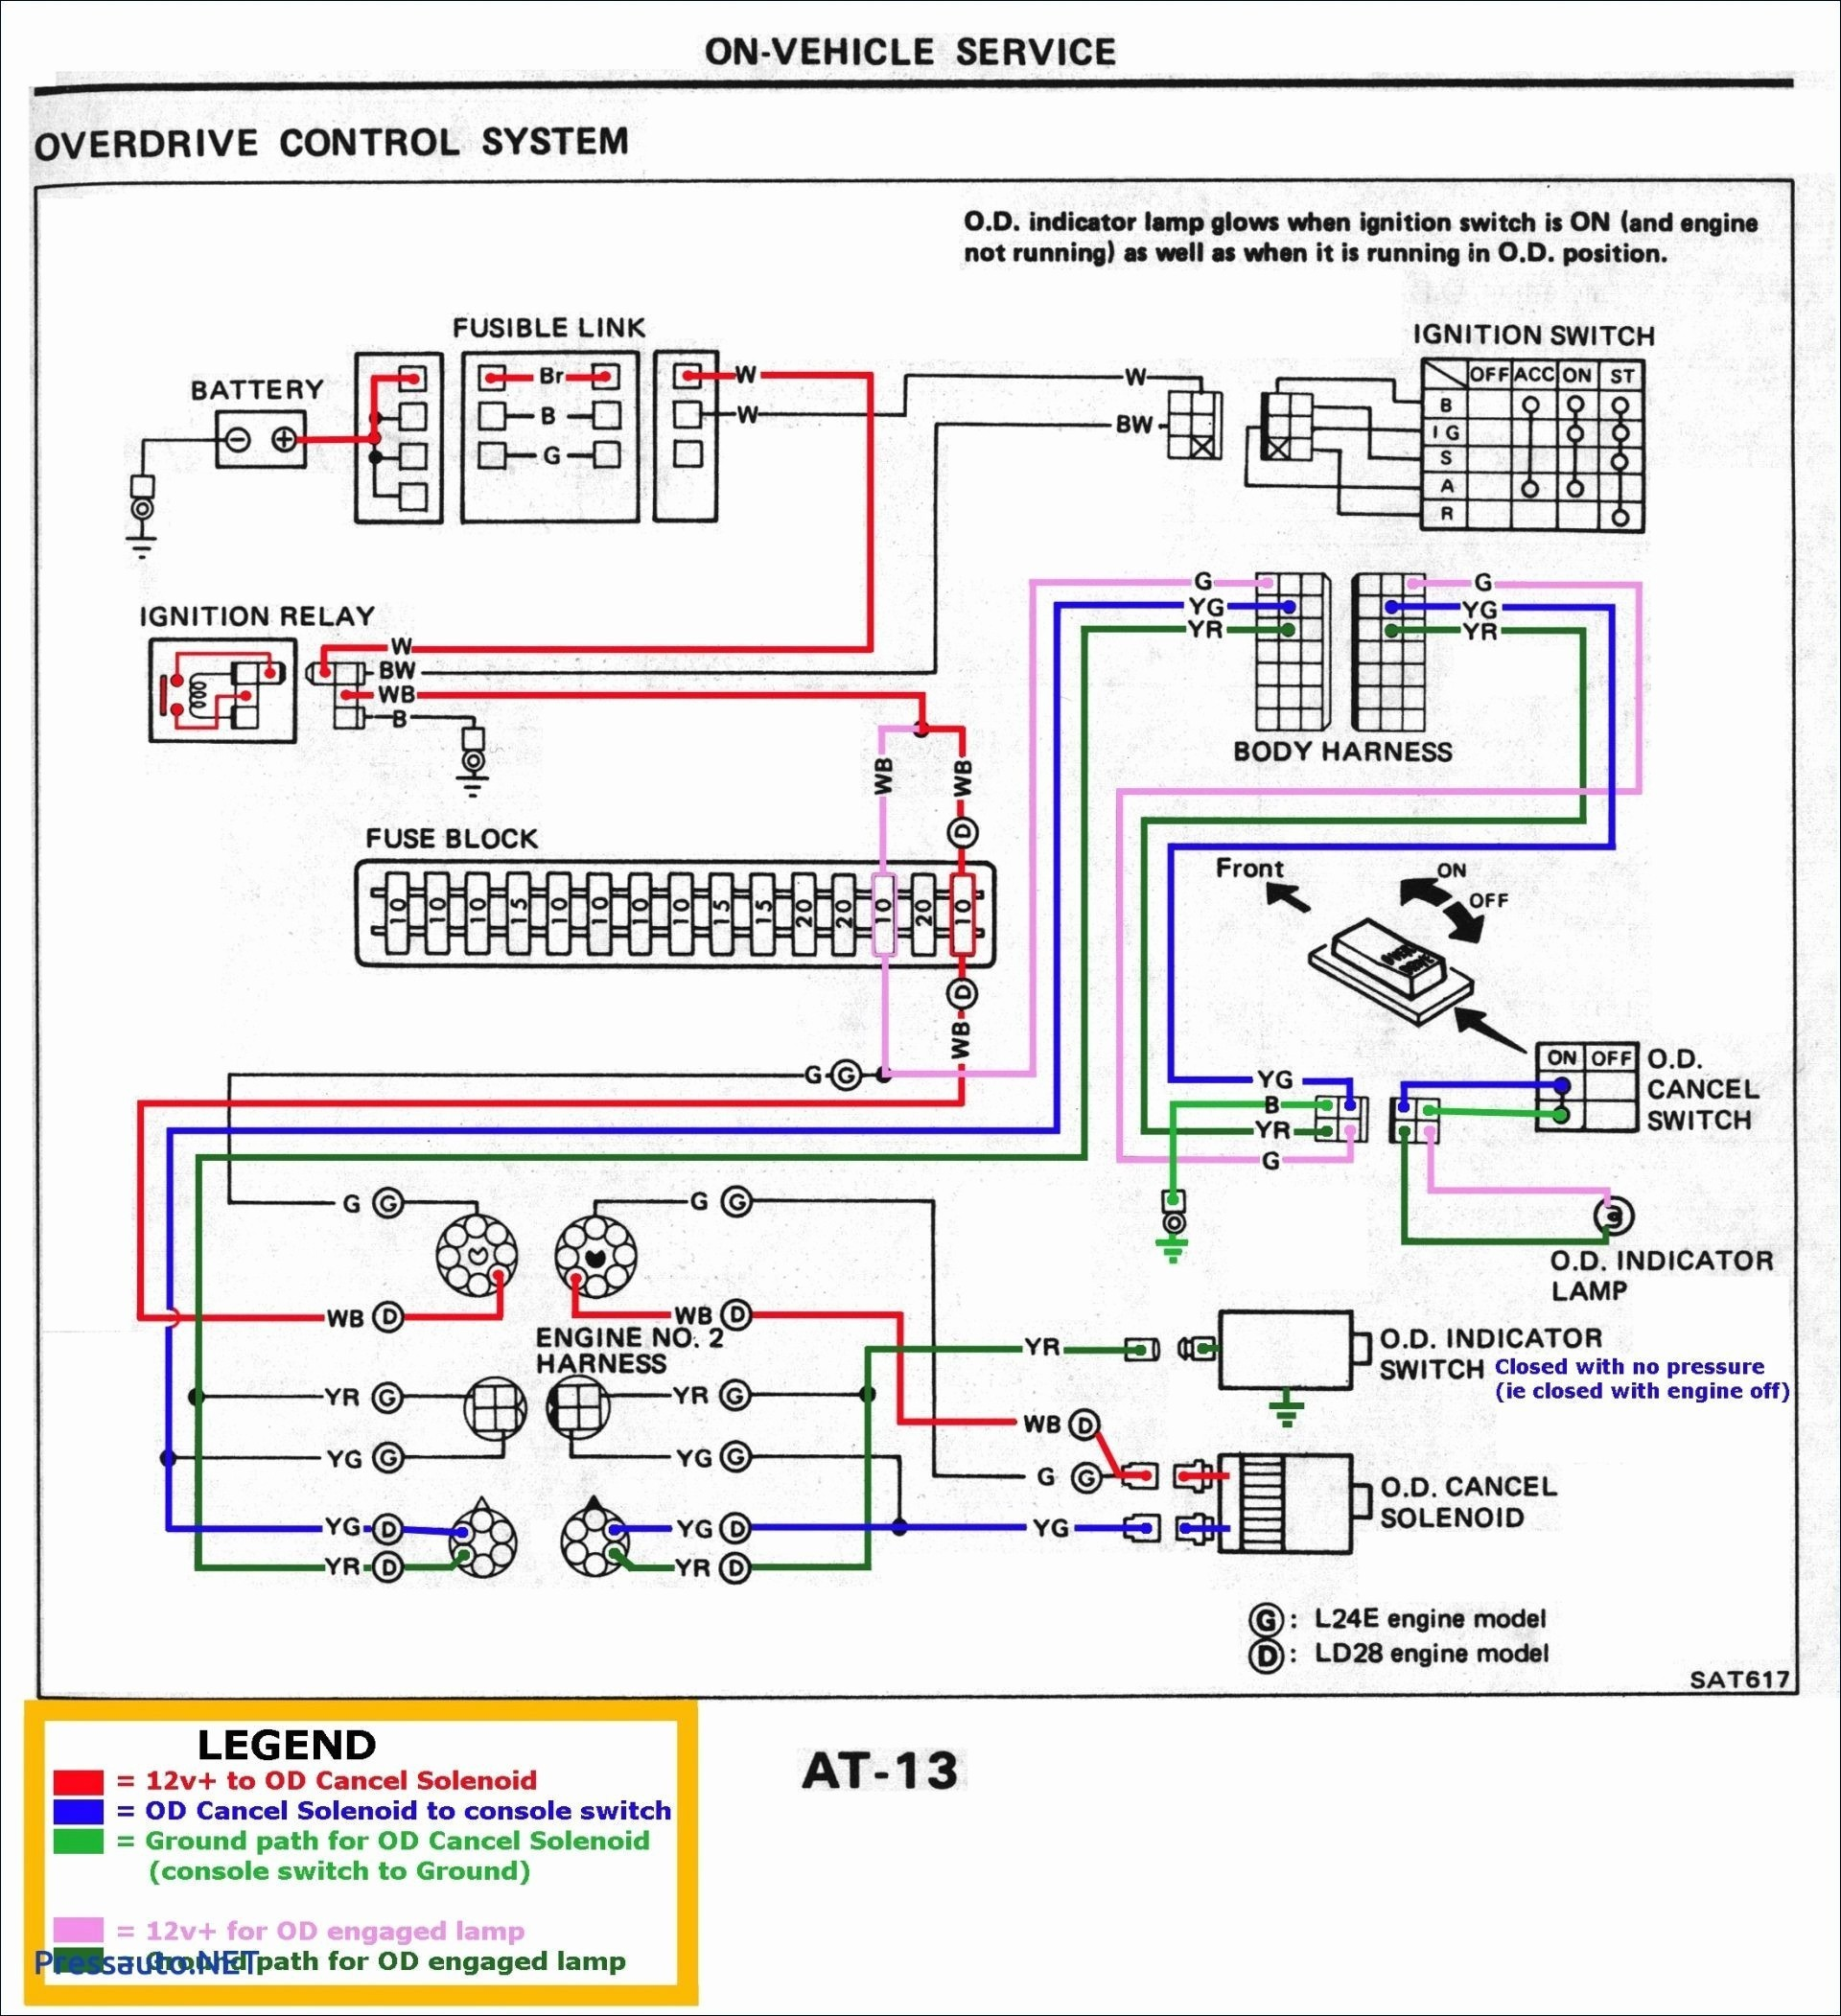 2007 Hyundai Santa Fe Engine Diagram Wiring Diagram 2003 Hyundai Tiburon 2 0l Schematics Wiring Diagrams • Of 2007 Hyundai Santa Fe Engine Diagram Wiring Diagram 2003 Hyundai Tiburon 2 0l Schematics Wiring Diagrams •